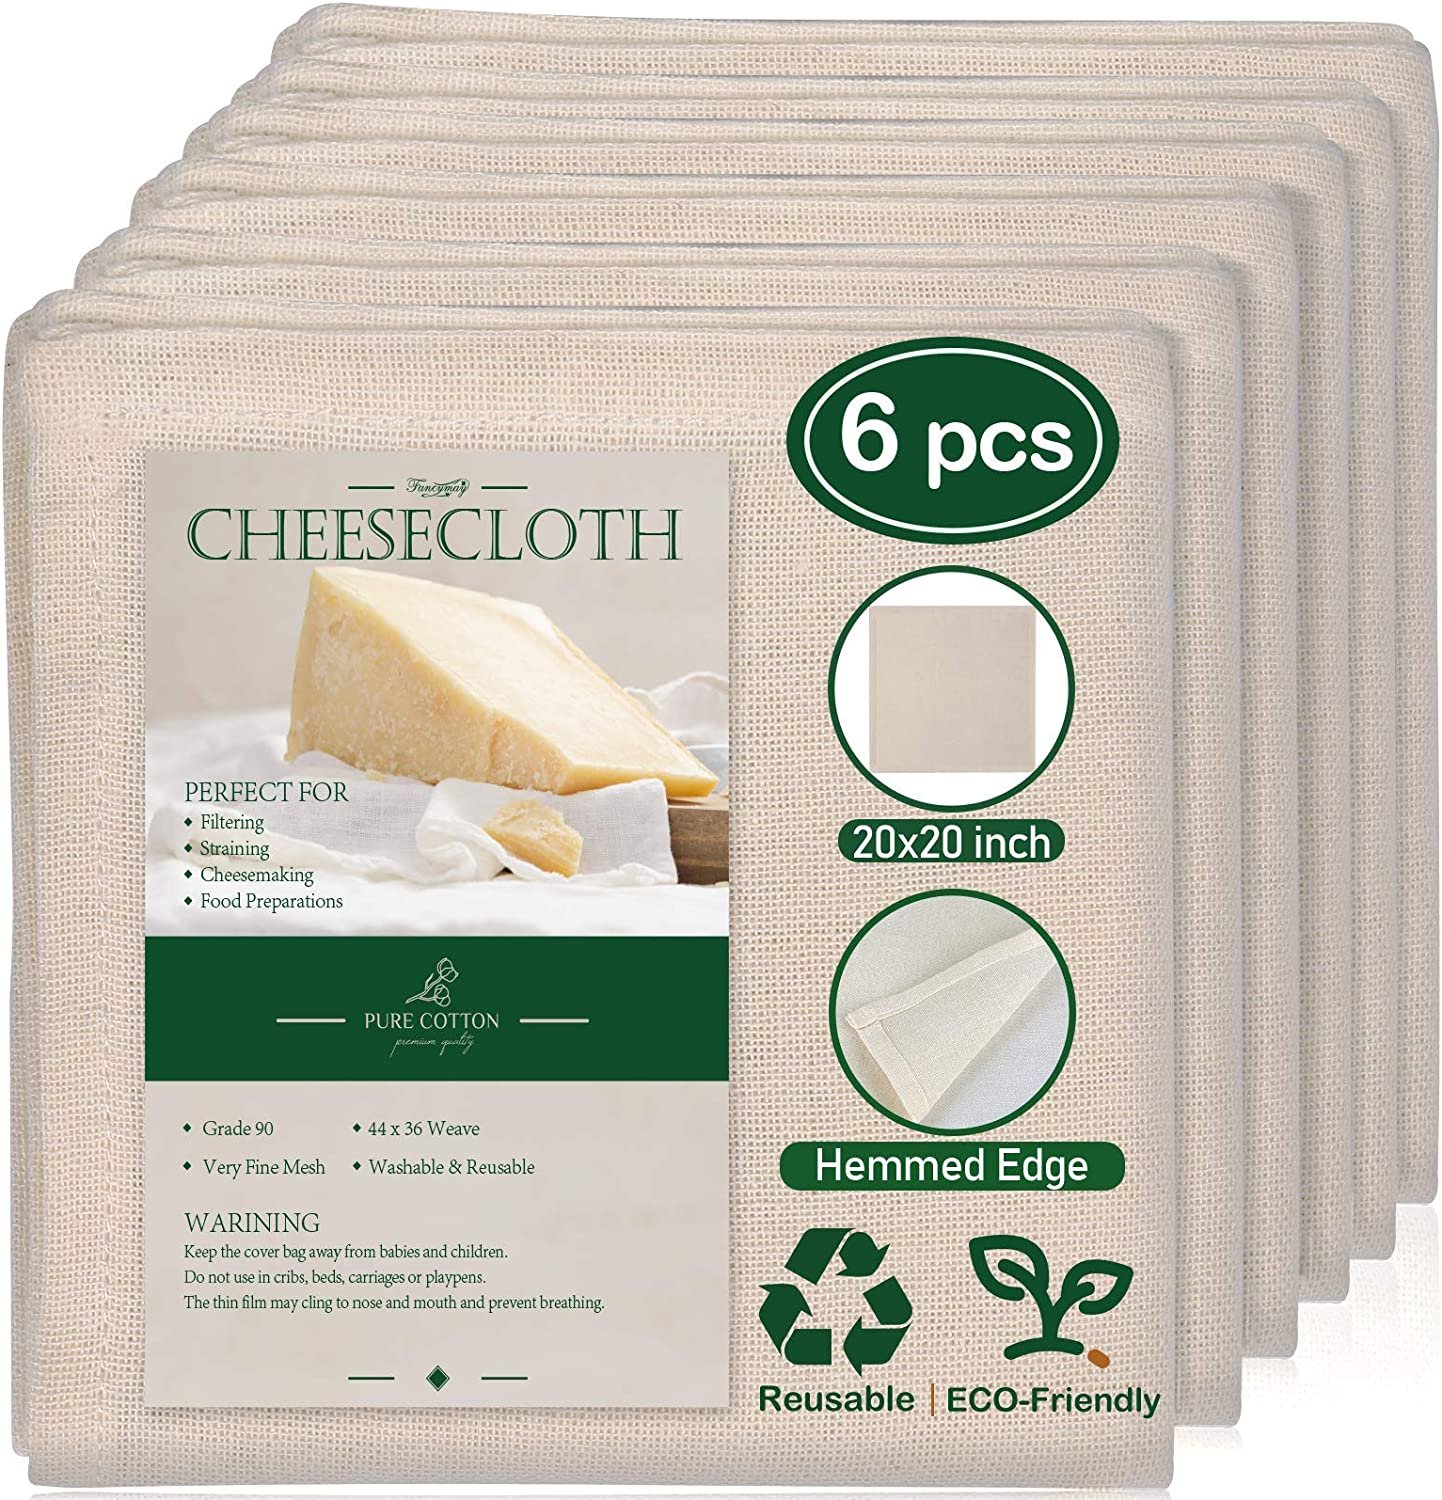 6 Pack 20x20 Inch Max 44% ! Super beauty product restock quality top! OFF Grade 90 C Cheesecloth Hemmed Unbleached 100%